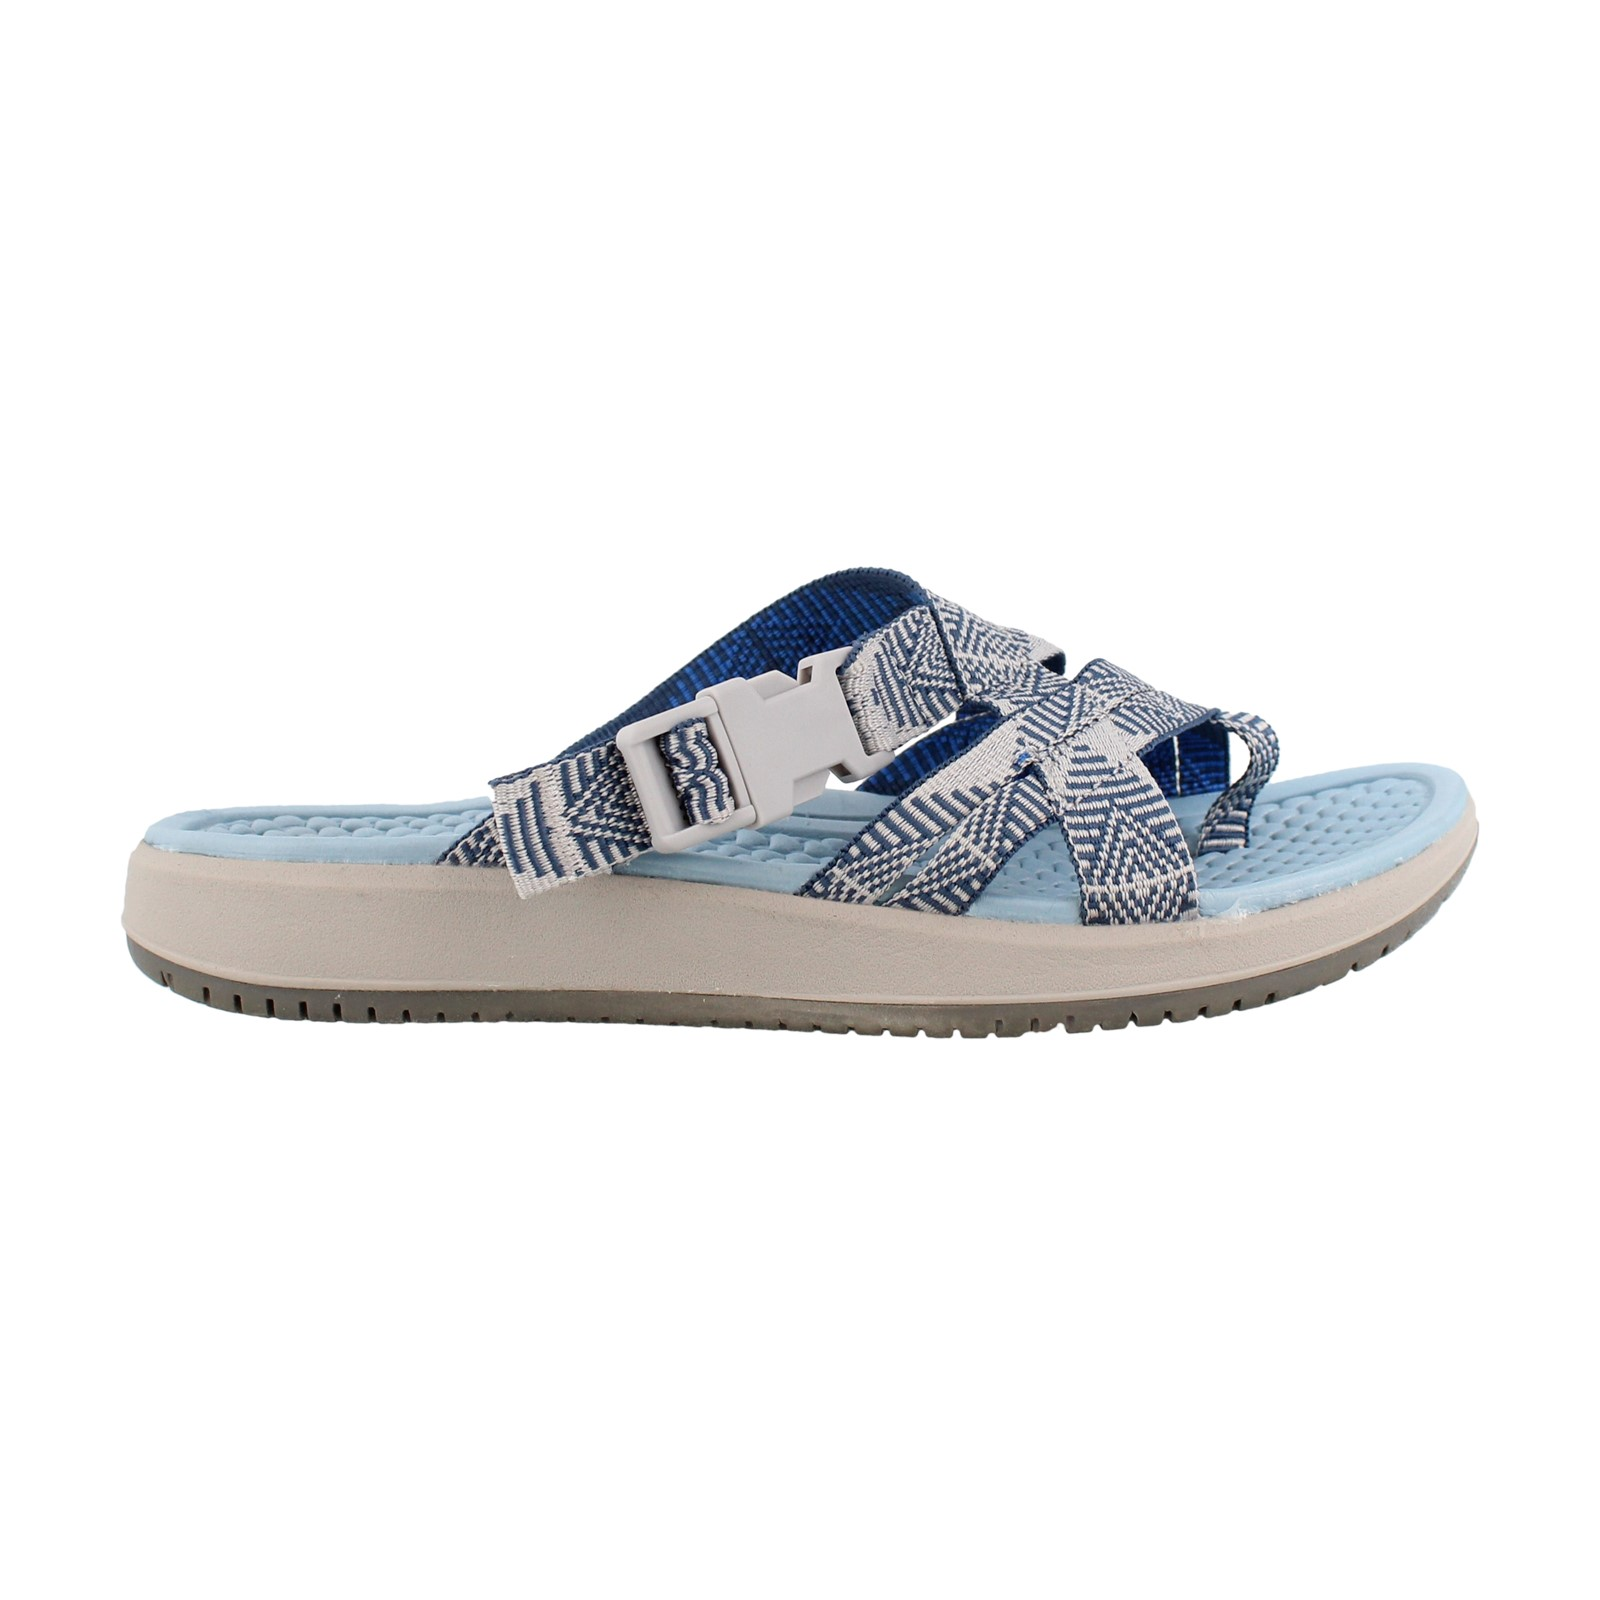 Women's Bare Traps, Wilona Slide Sandals